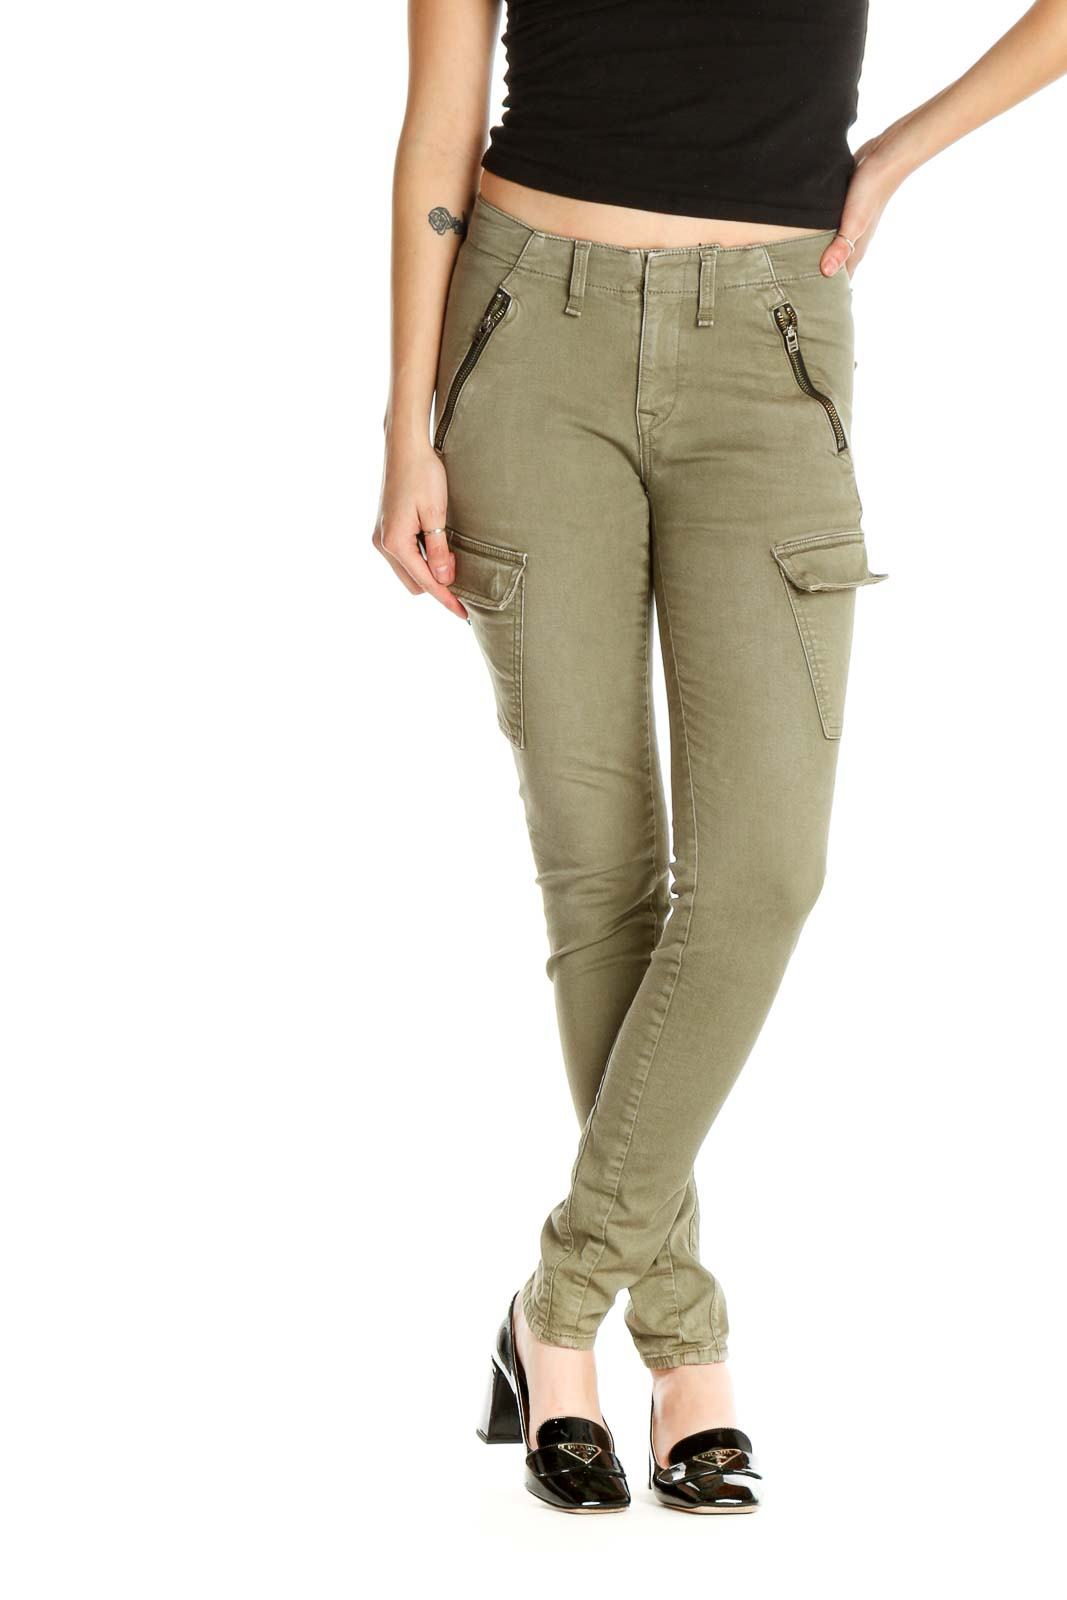 Green Solid Casual Cargos Pants Front